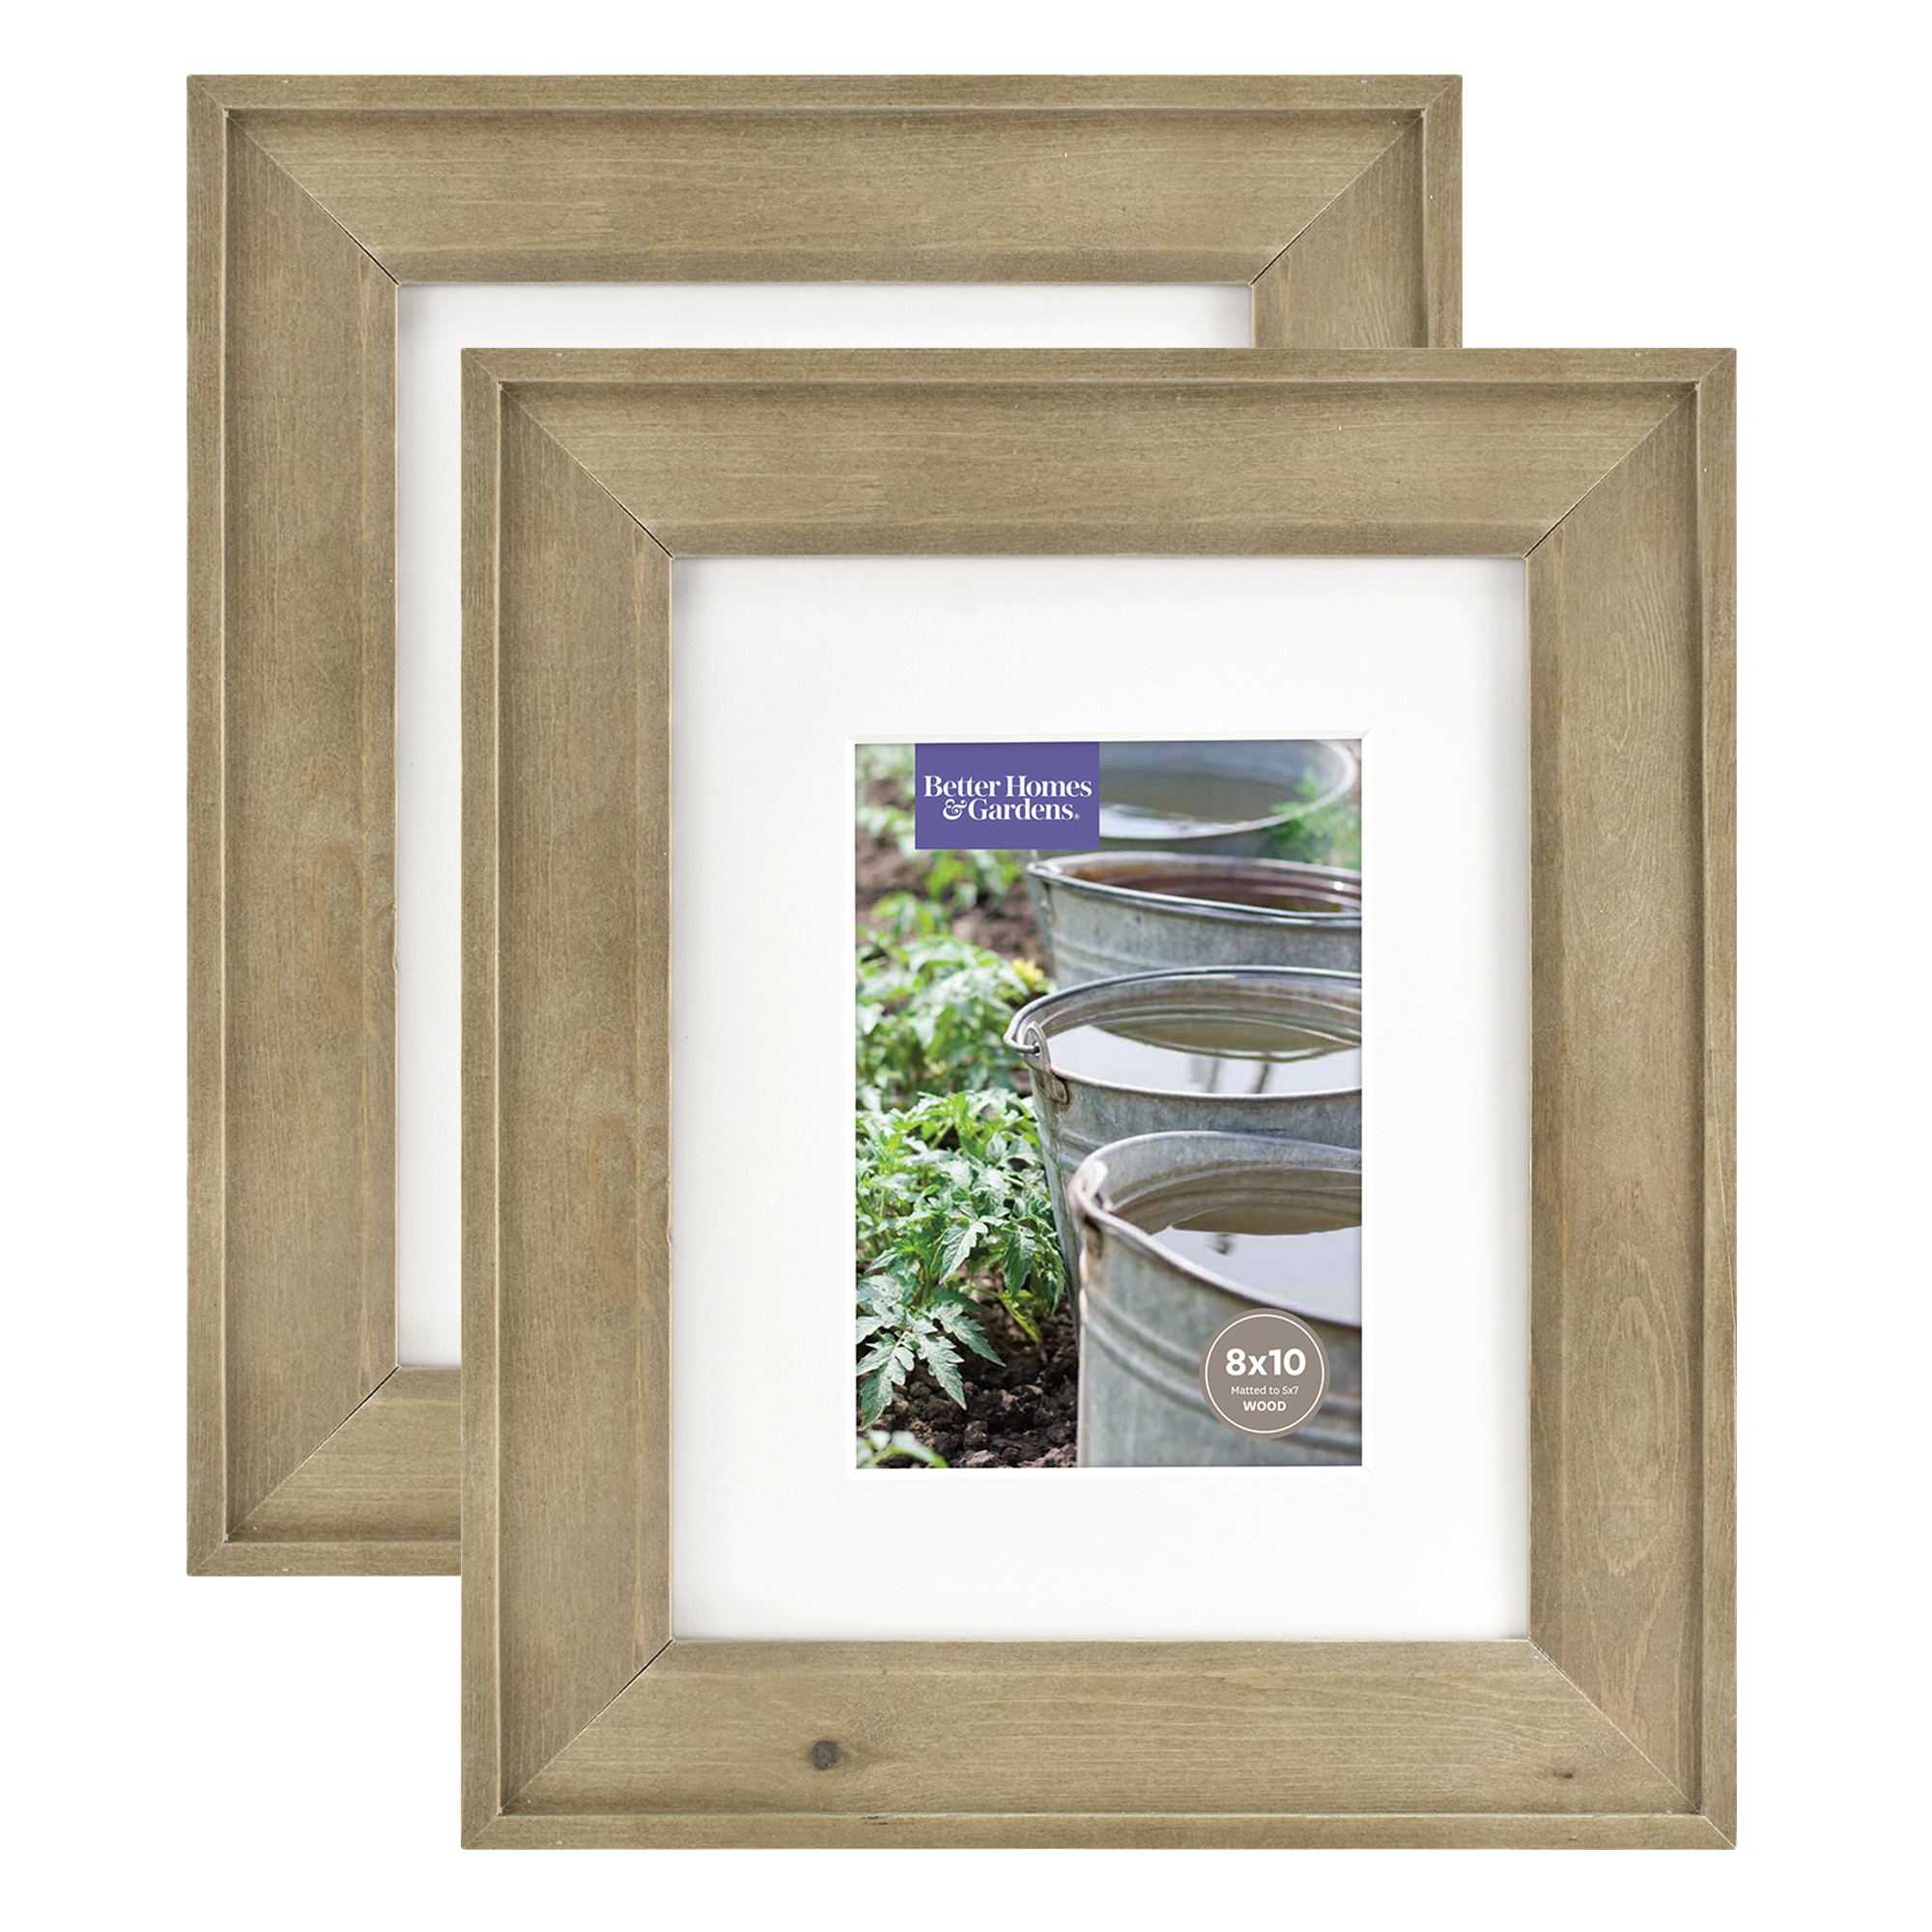 rustic wood picture frames. Better Homes \u0026 Gardens 8x10/5x7 Rustic Wood Picture Frame, Frames